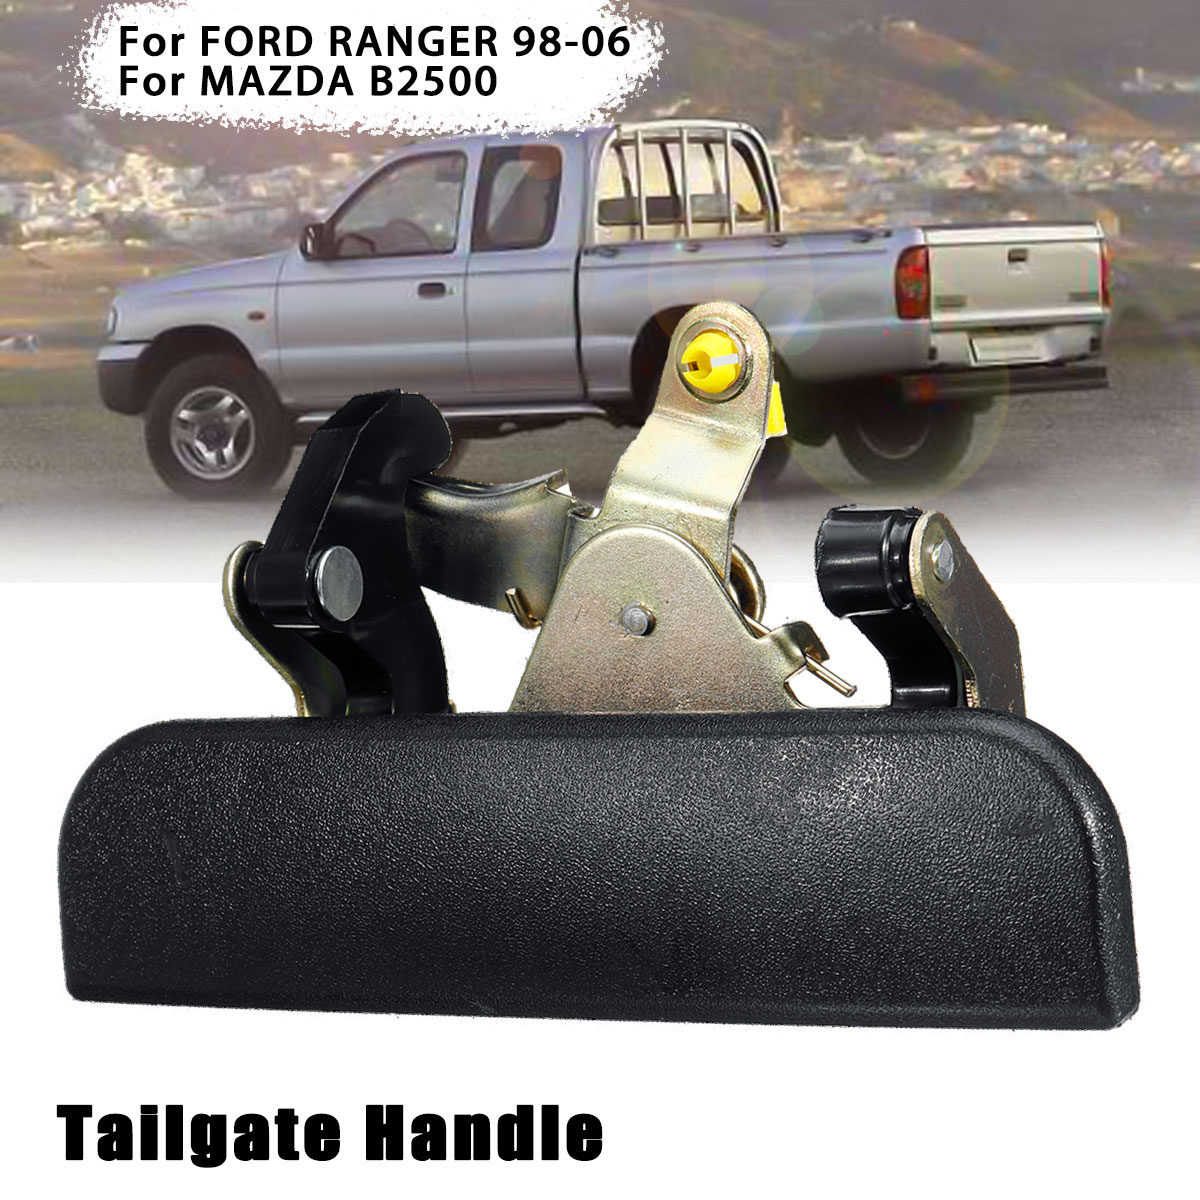 Black Rear Tailgate Trunk Handle For Ford Ranger For Mazda B2500 For Pickup 1999 2000 2001 2002 2003 2004 2005 2006 2007(China)